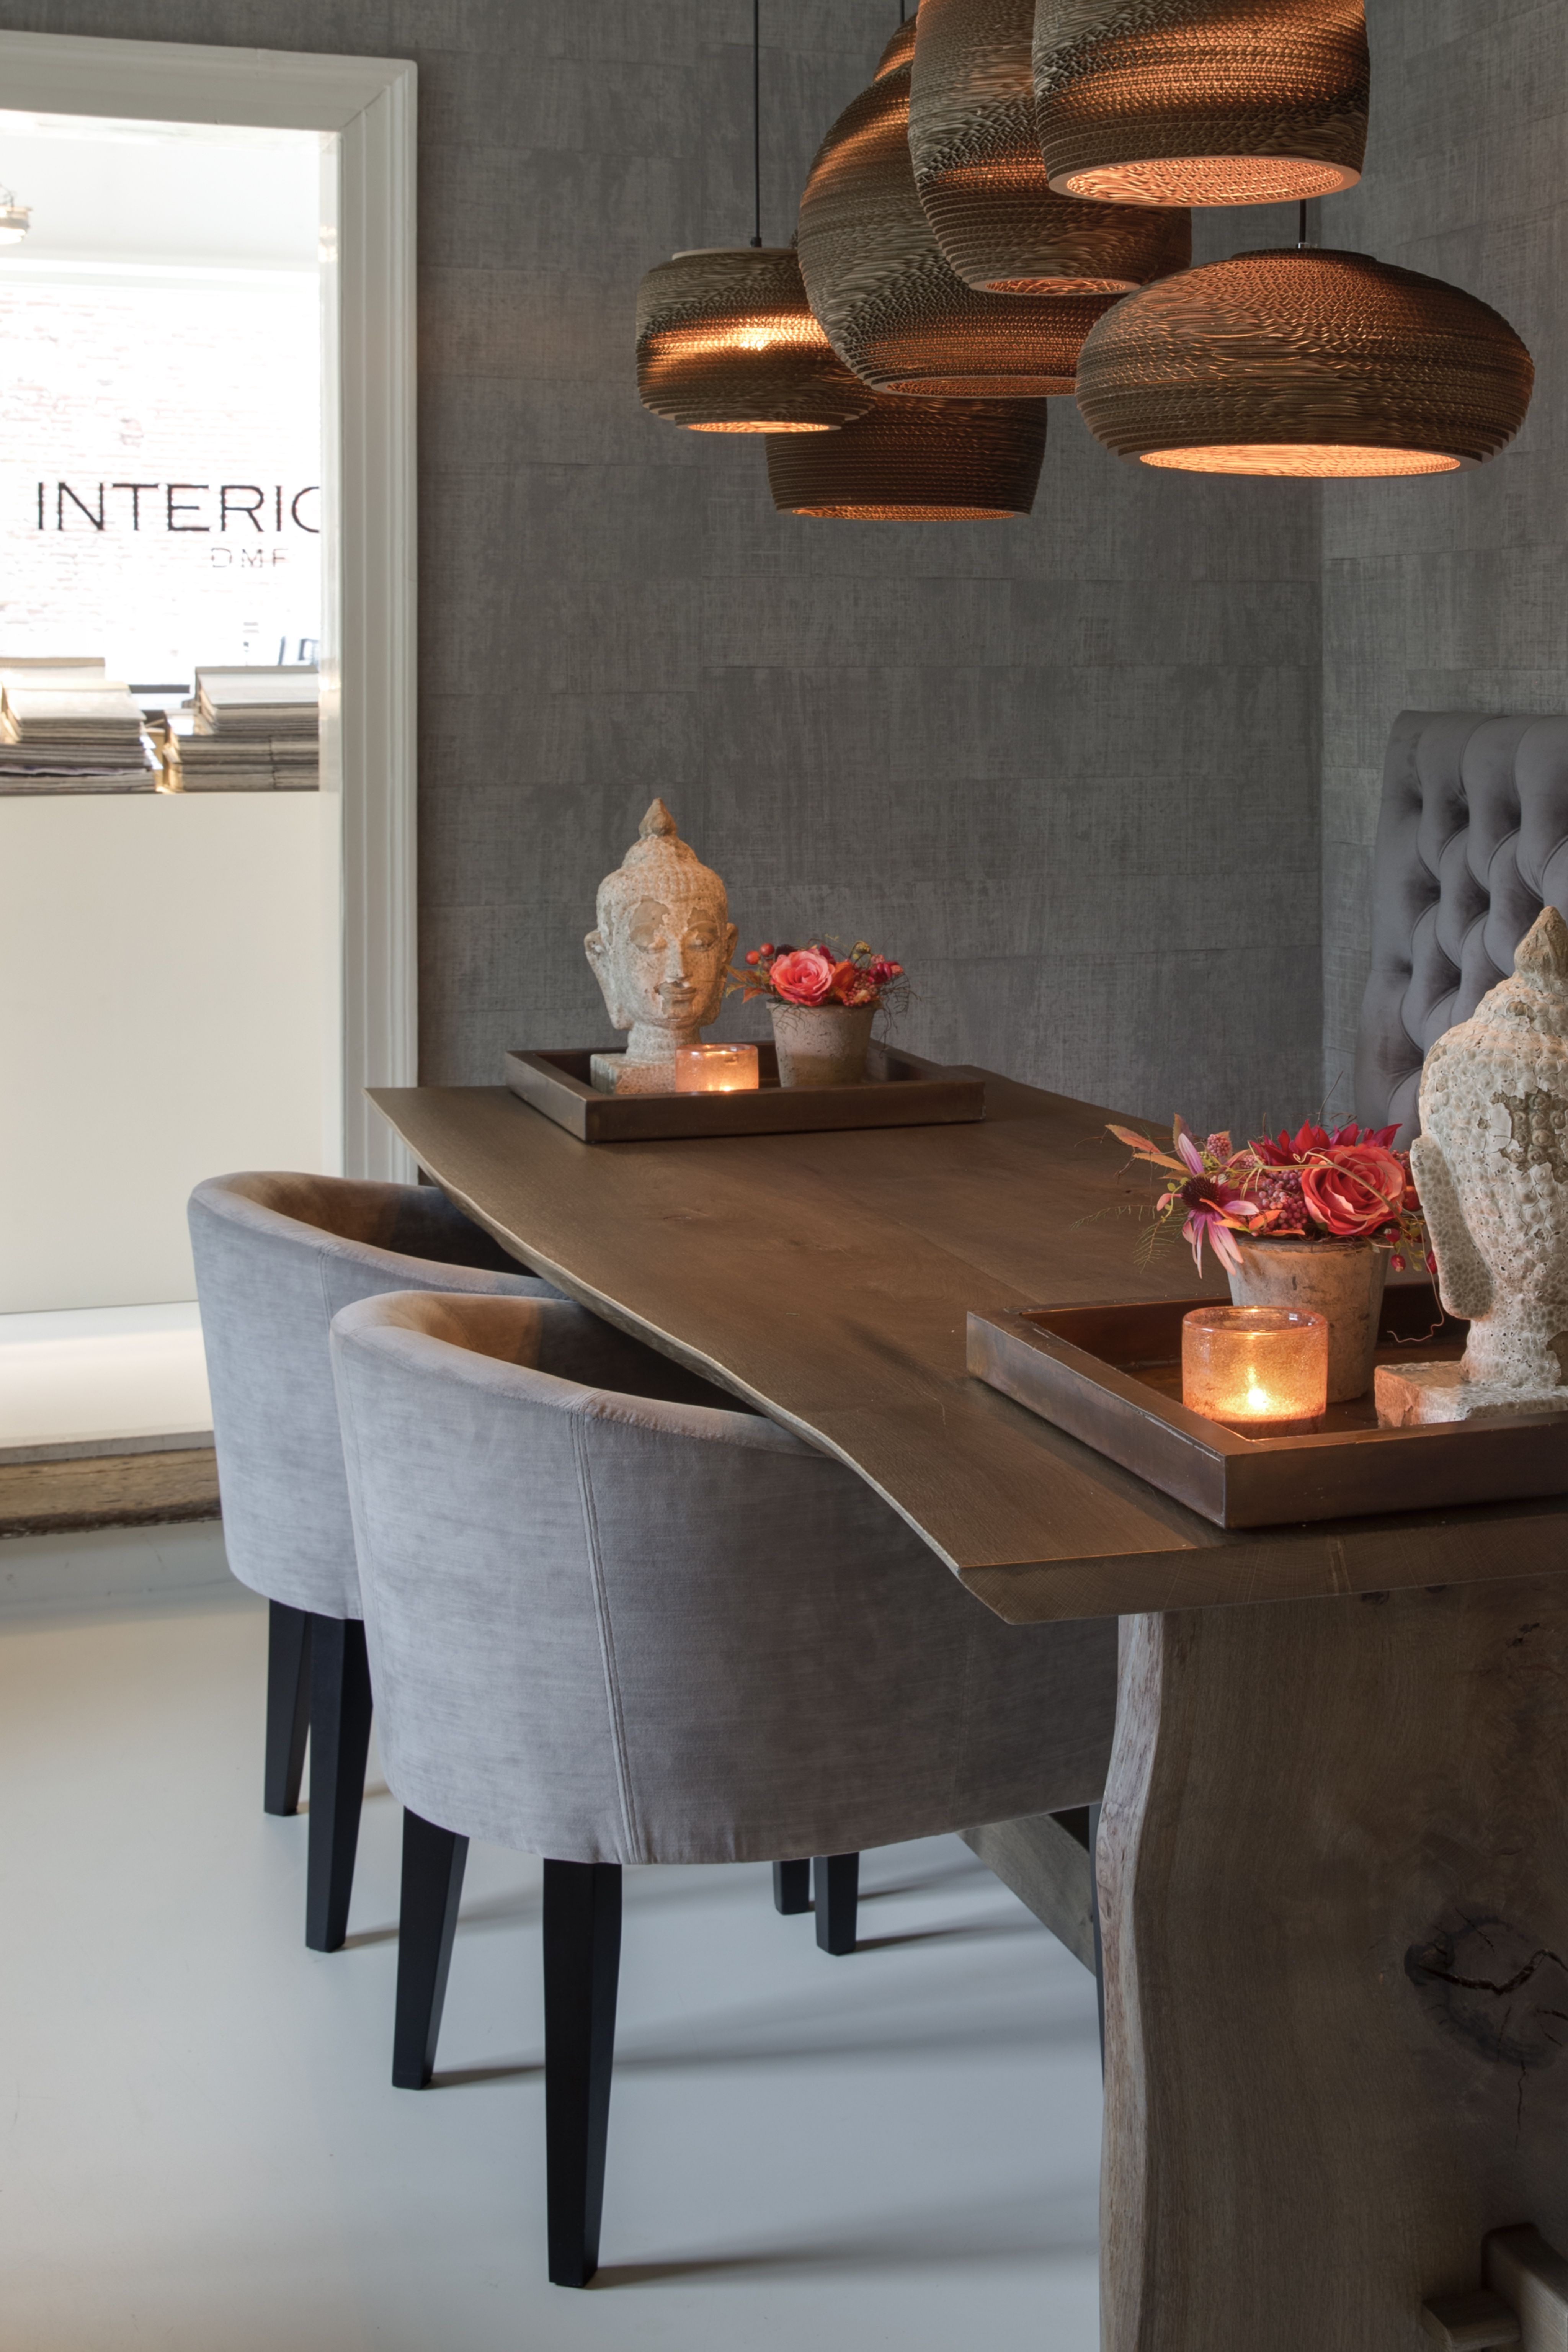 Interiors DMF La Table Foret  Dining Ronde  Lyon bank